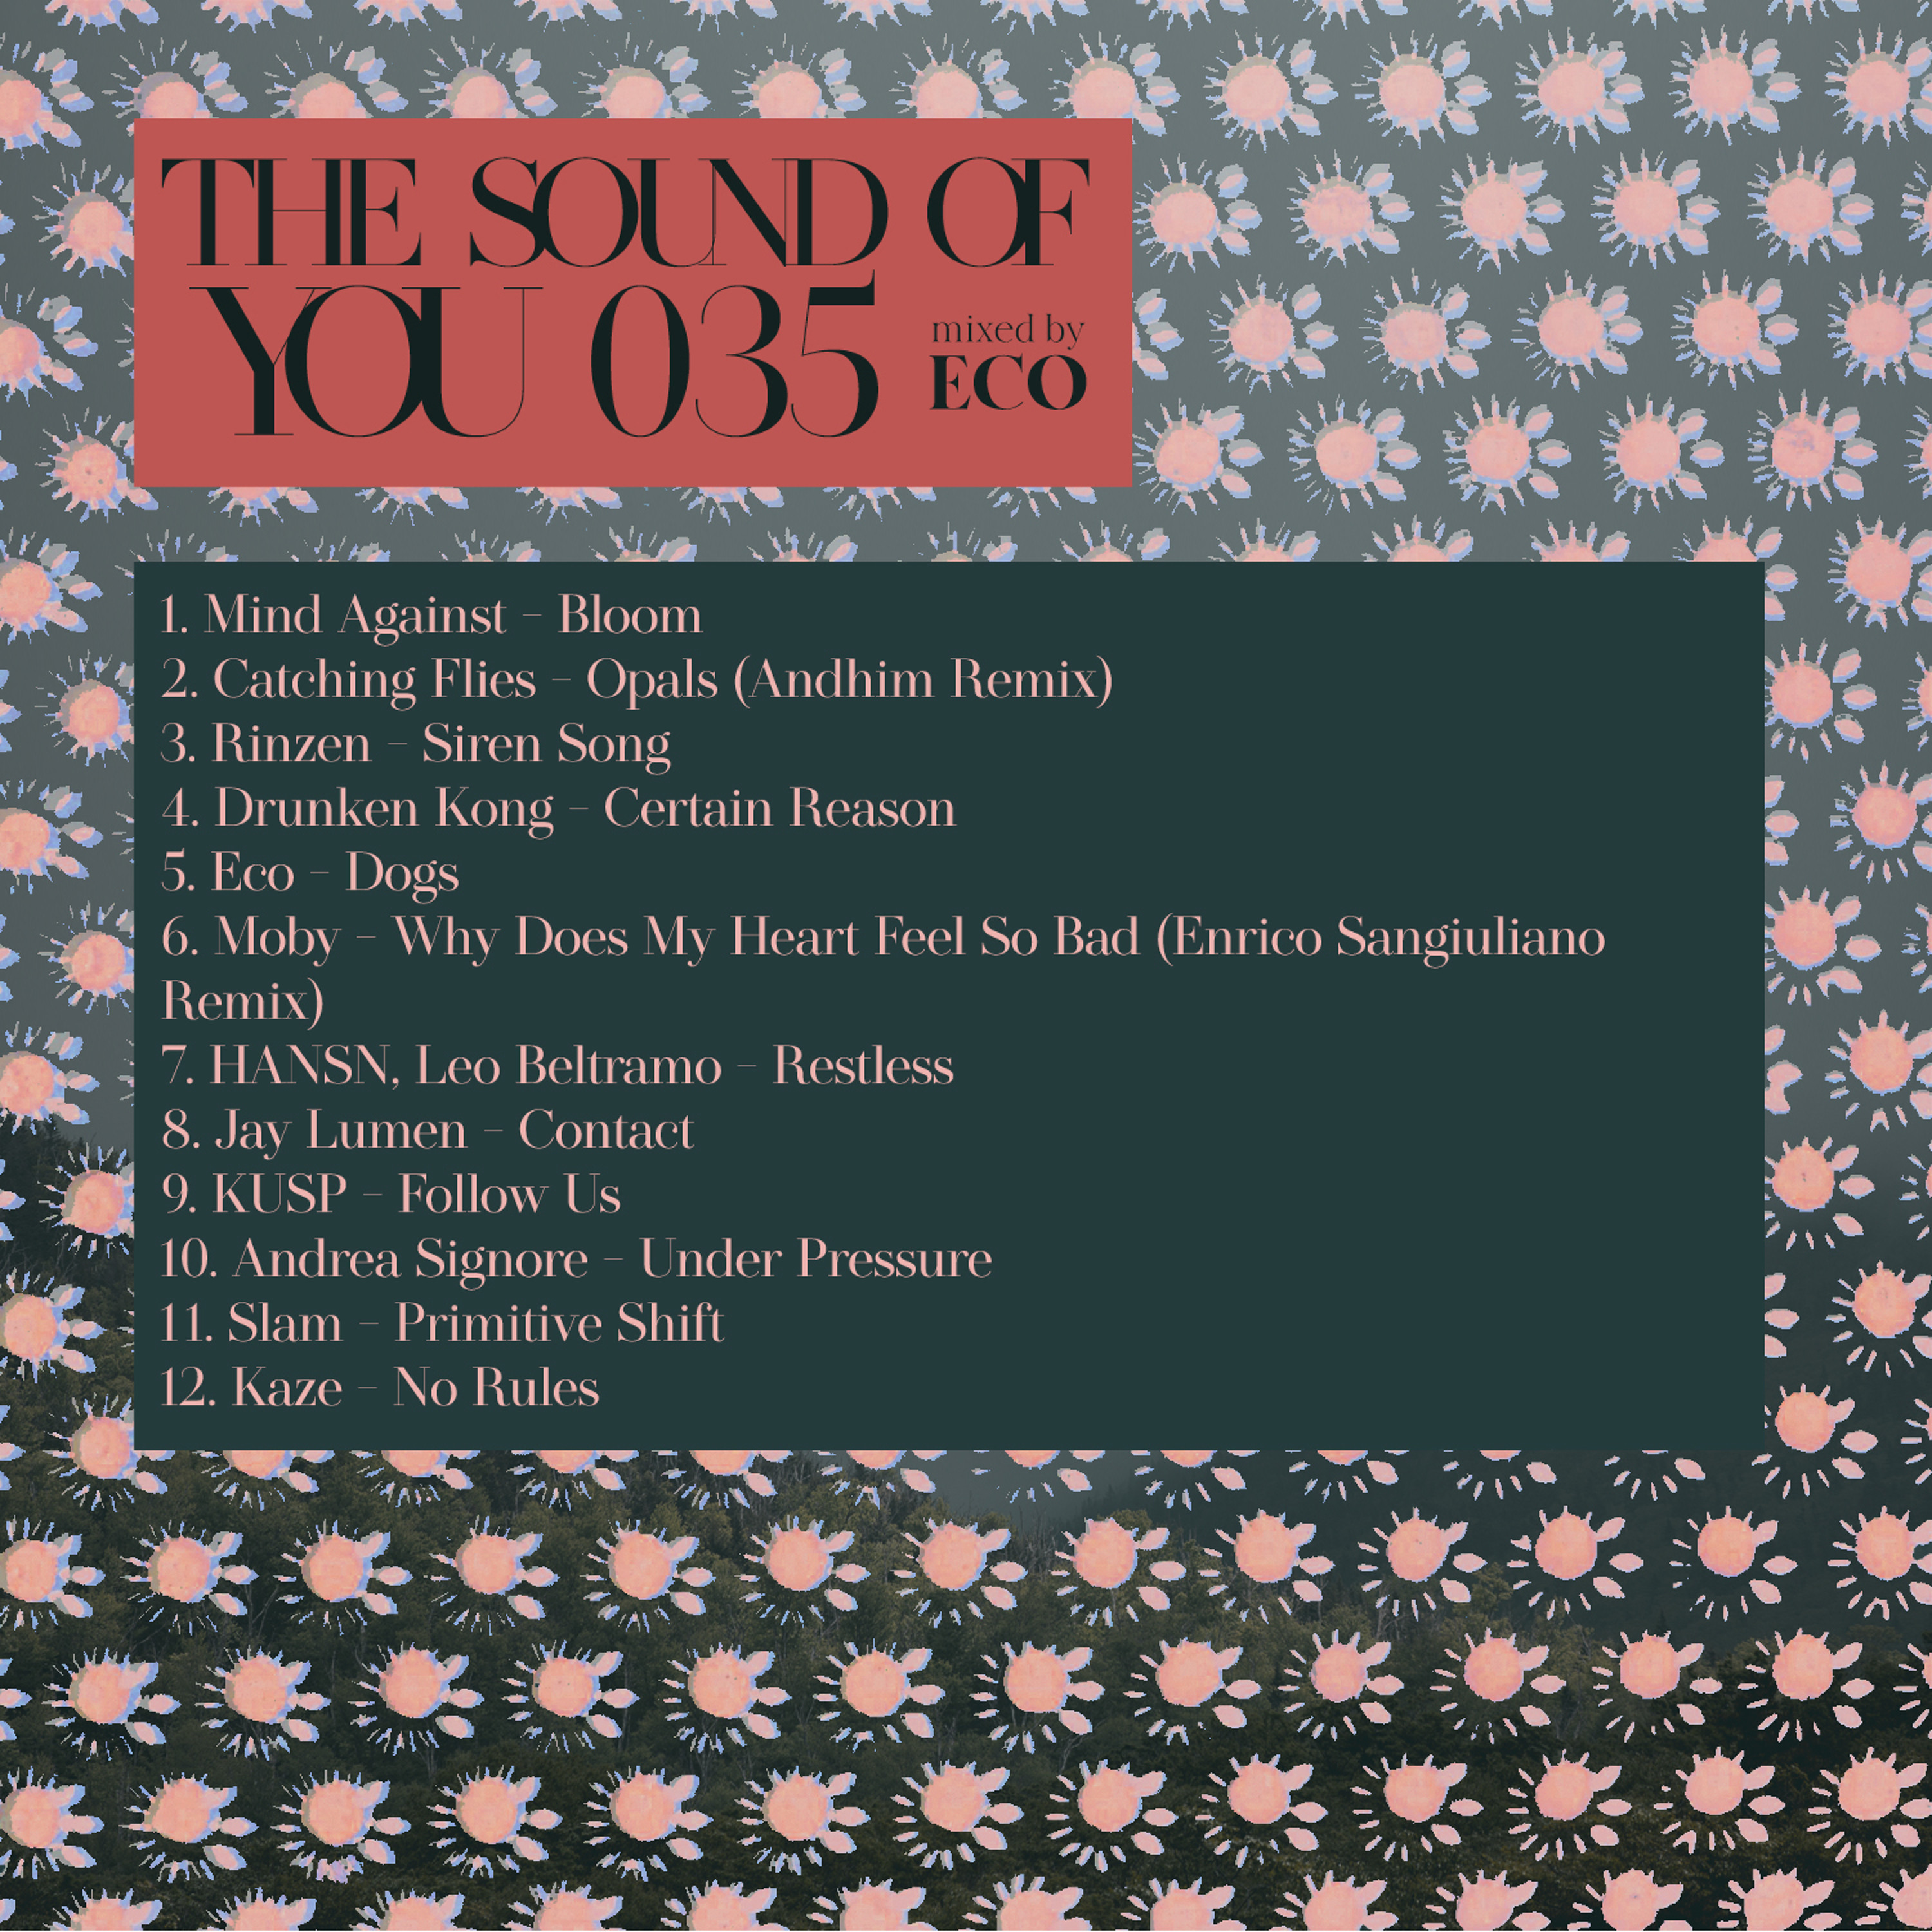 The Sound of You 035